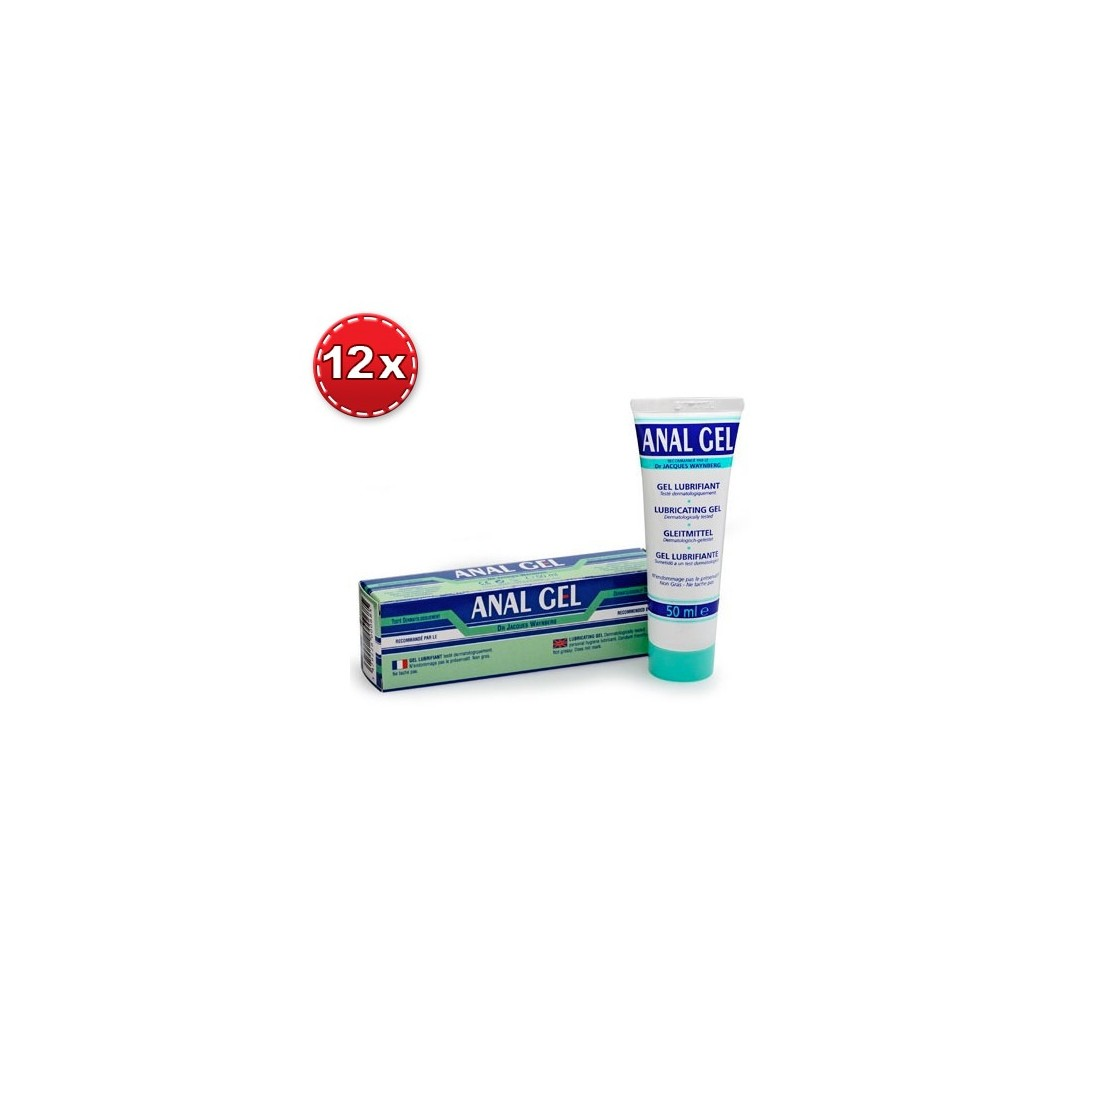 PACK WITH 12 ANAL GEL LUBRICANT 50ML